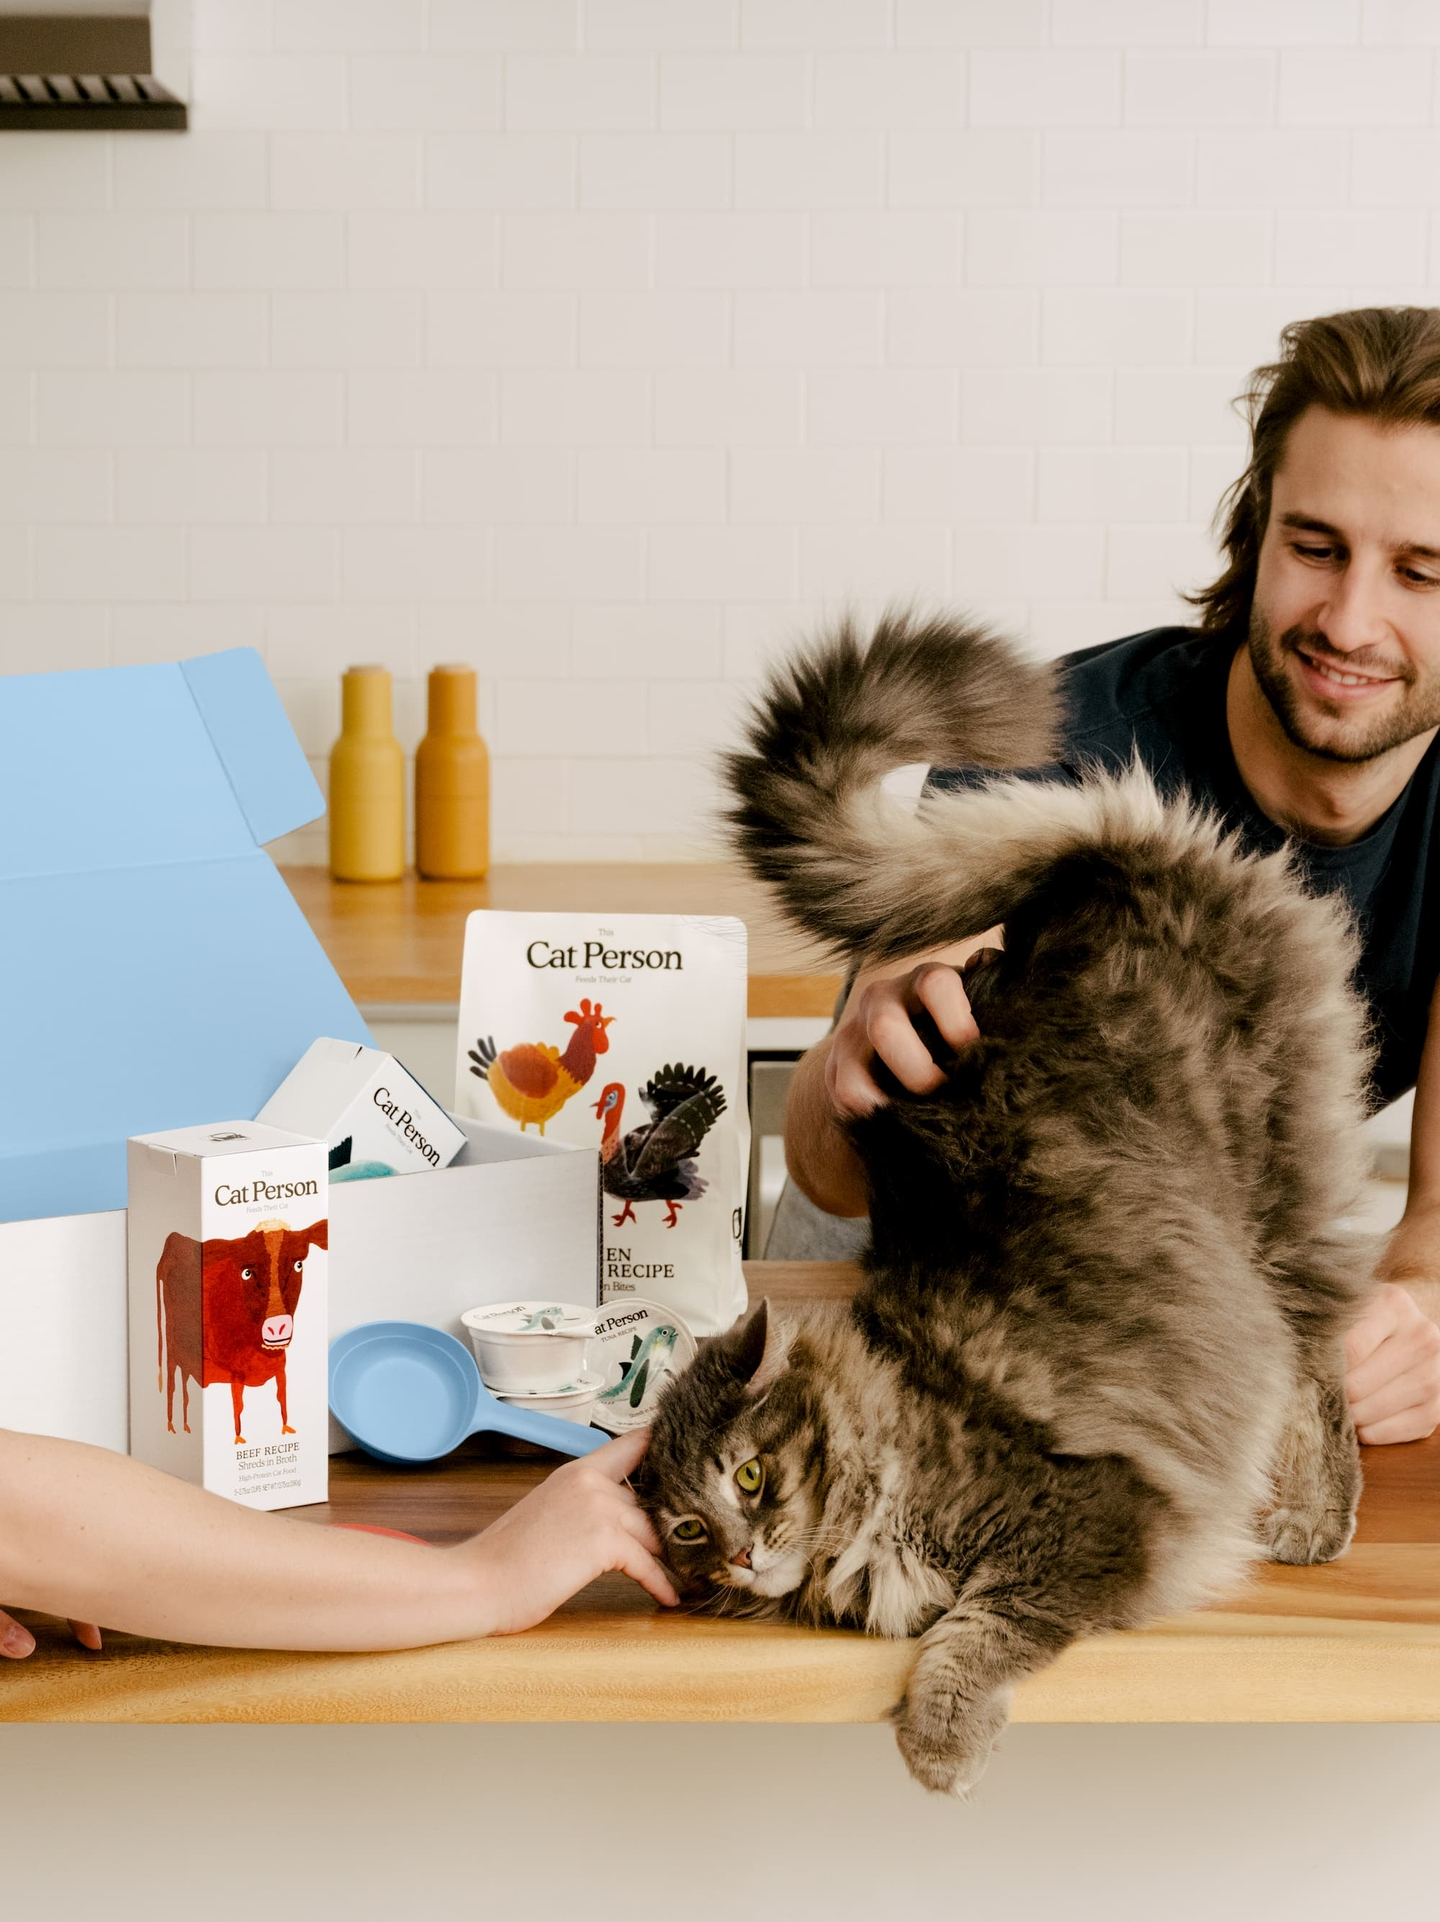 A man pets a happy cat. There is a Cat Person starter box in the background